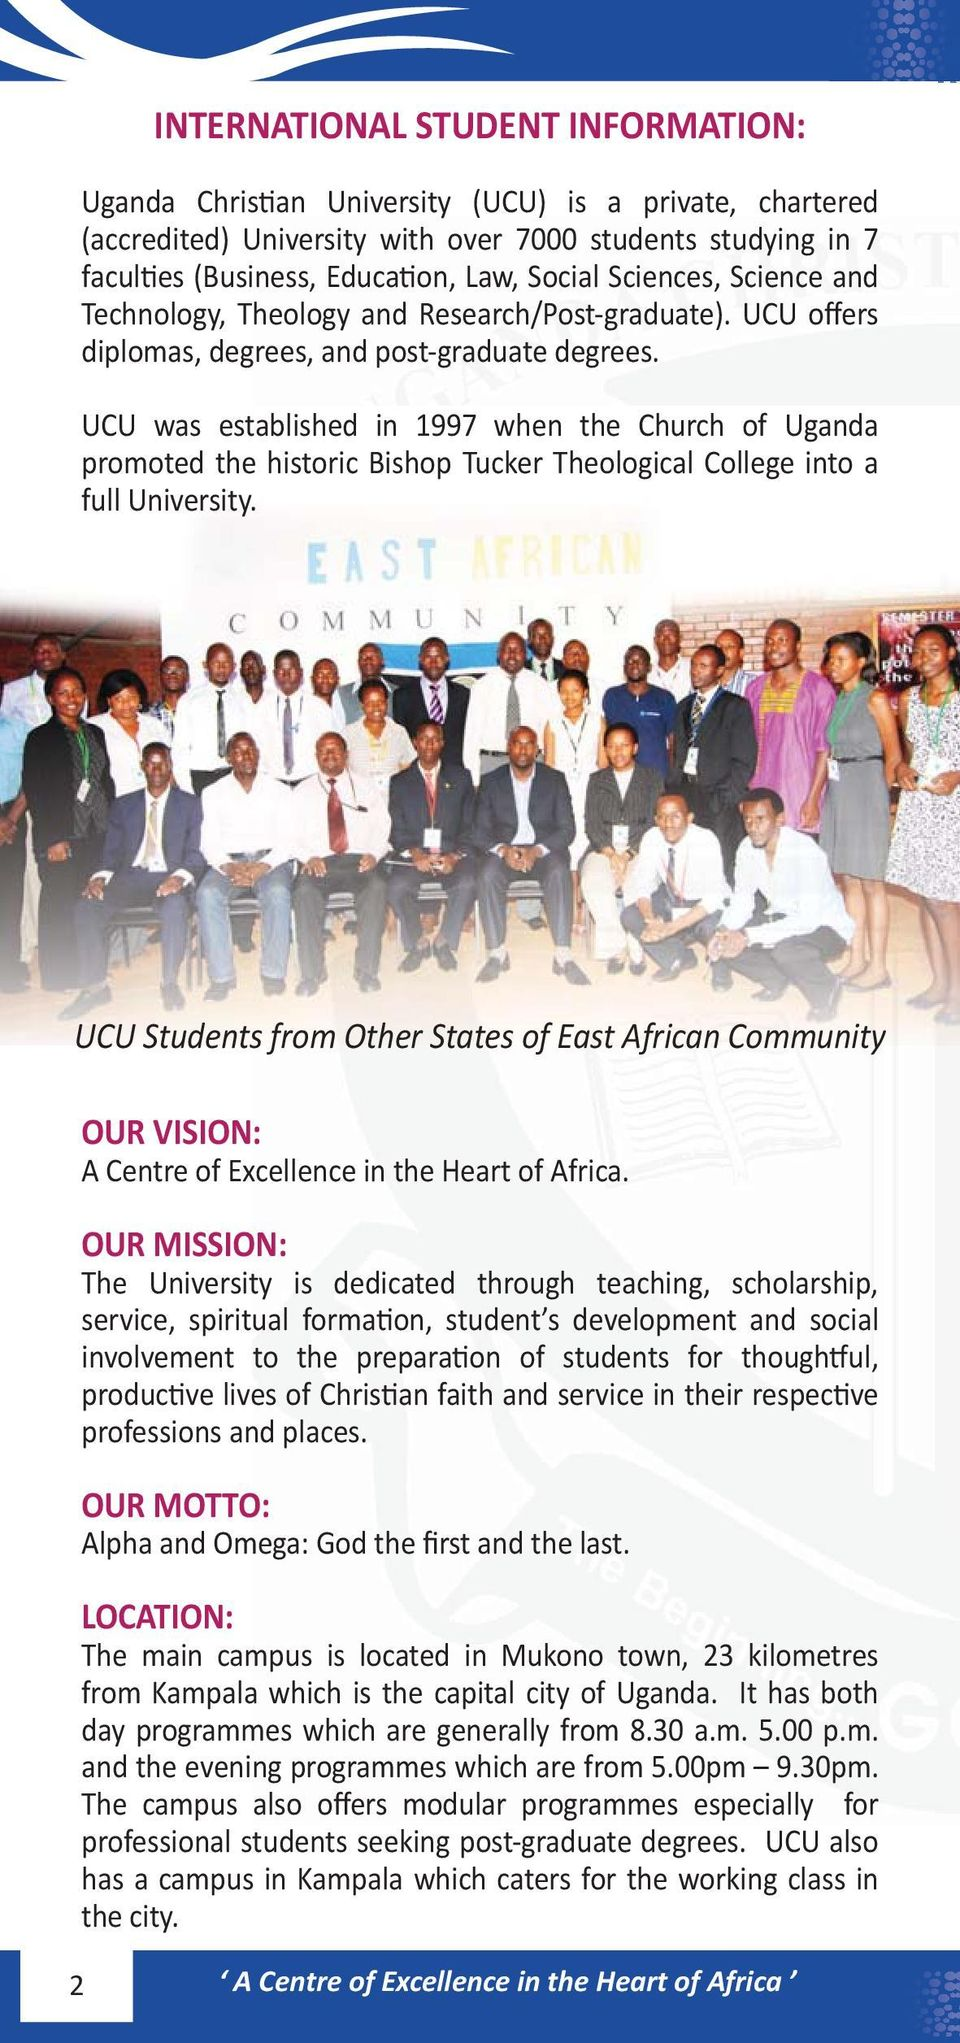 UCU was established in 1997 when the Church of Uganda promoted the historic Bishop Tucker Theological College into a full University.